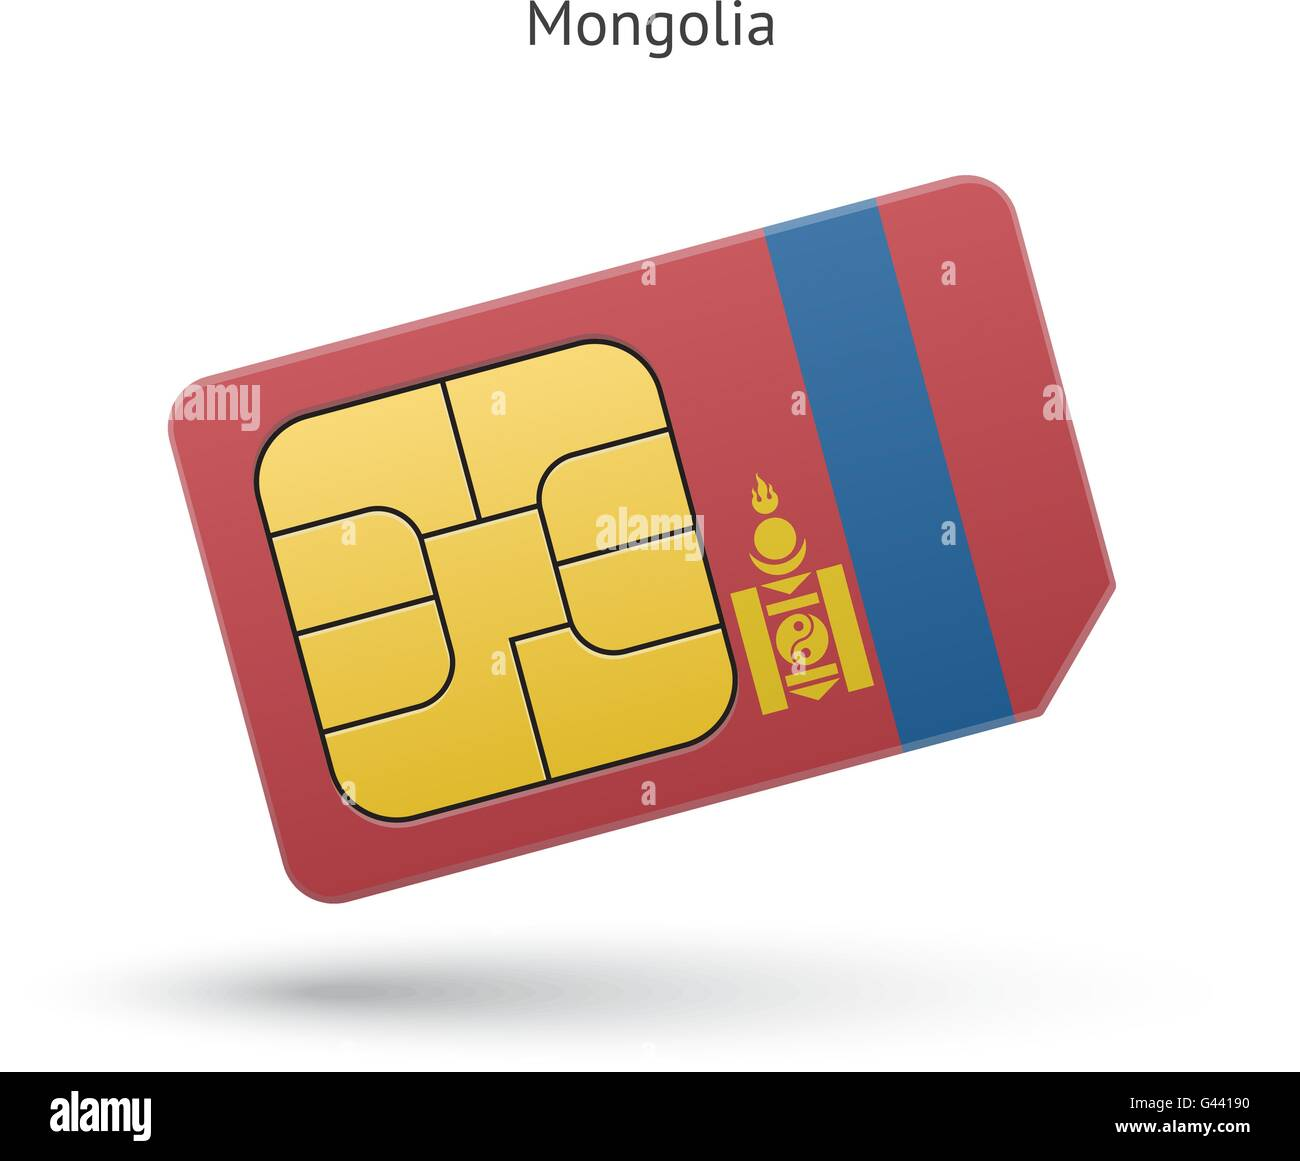 Mongolia mobile phone sim card with flag. - Stock Vector